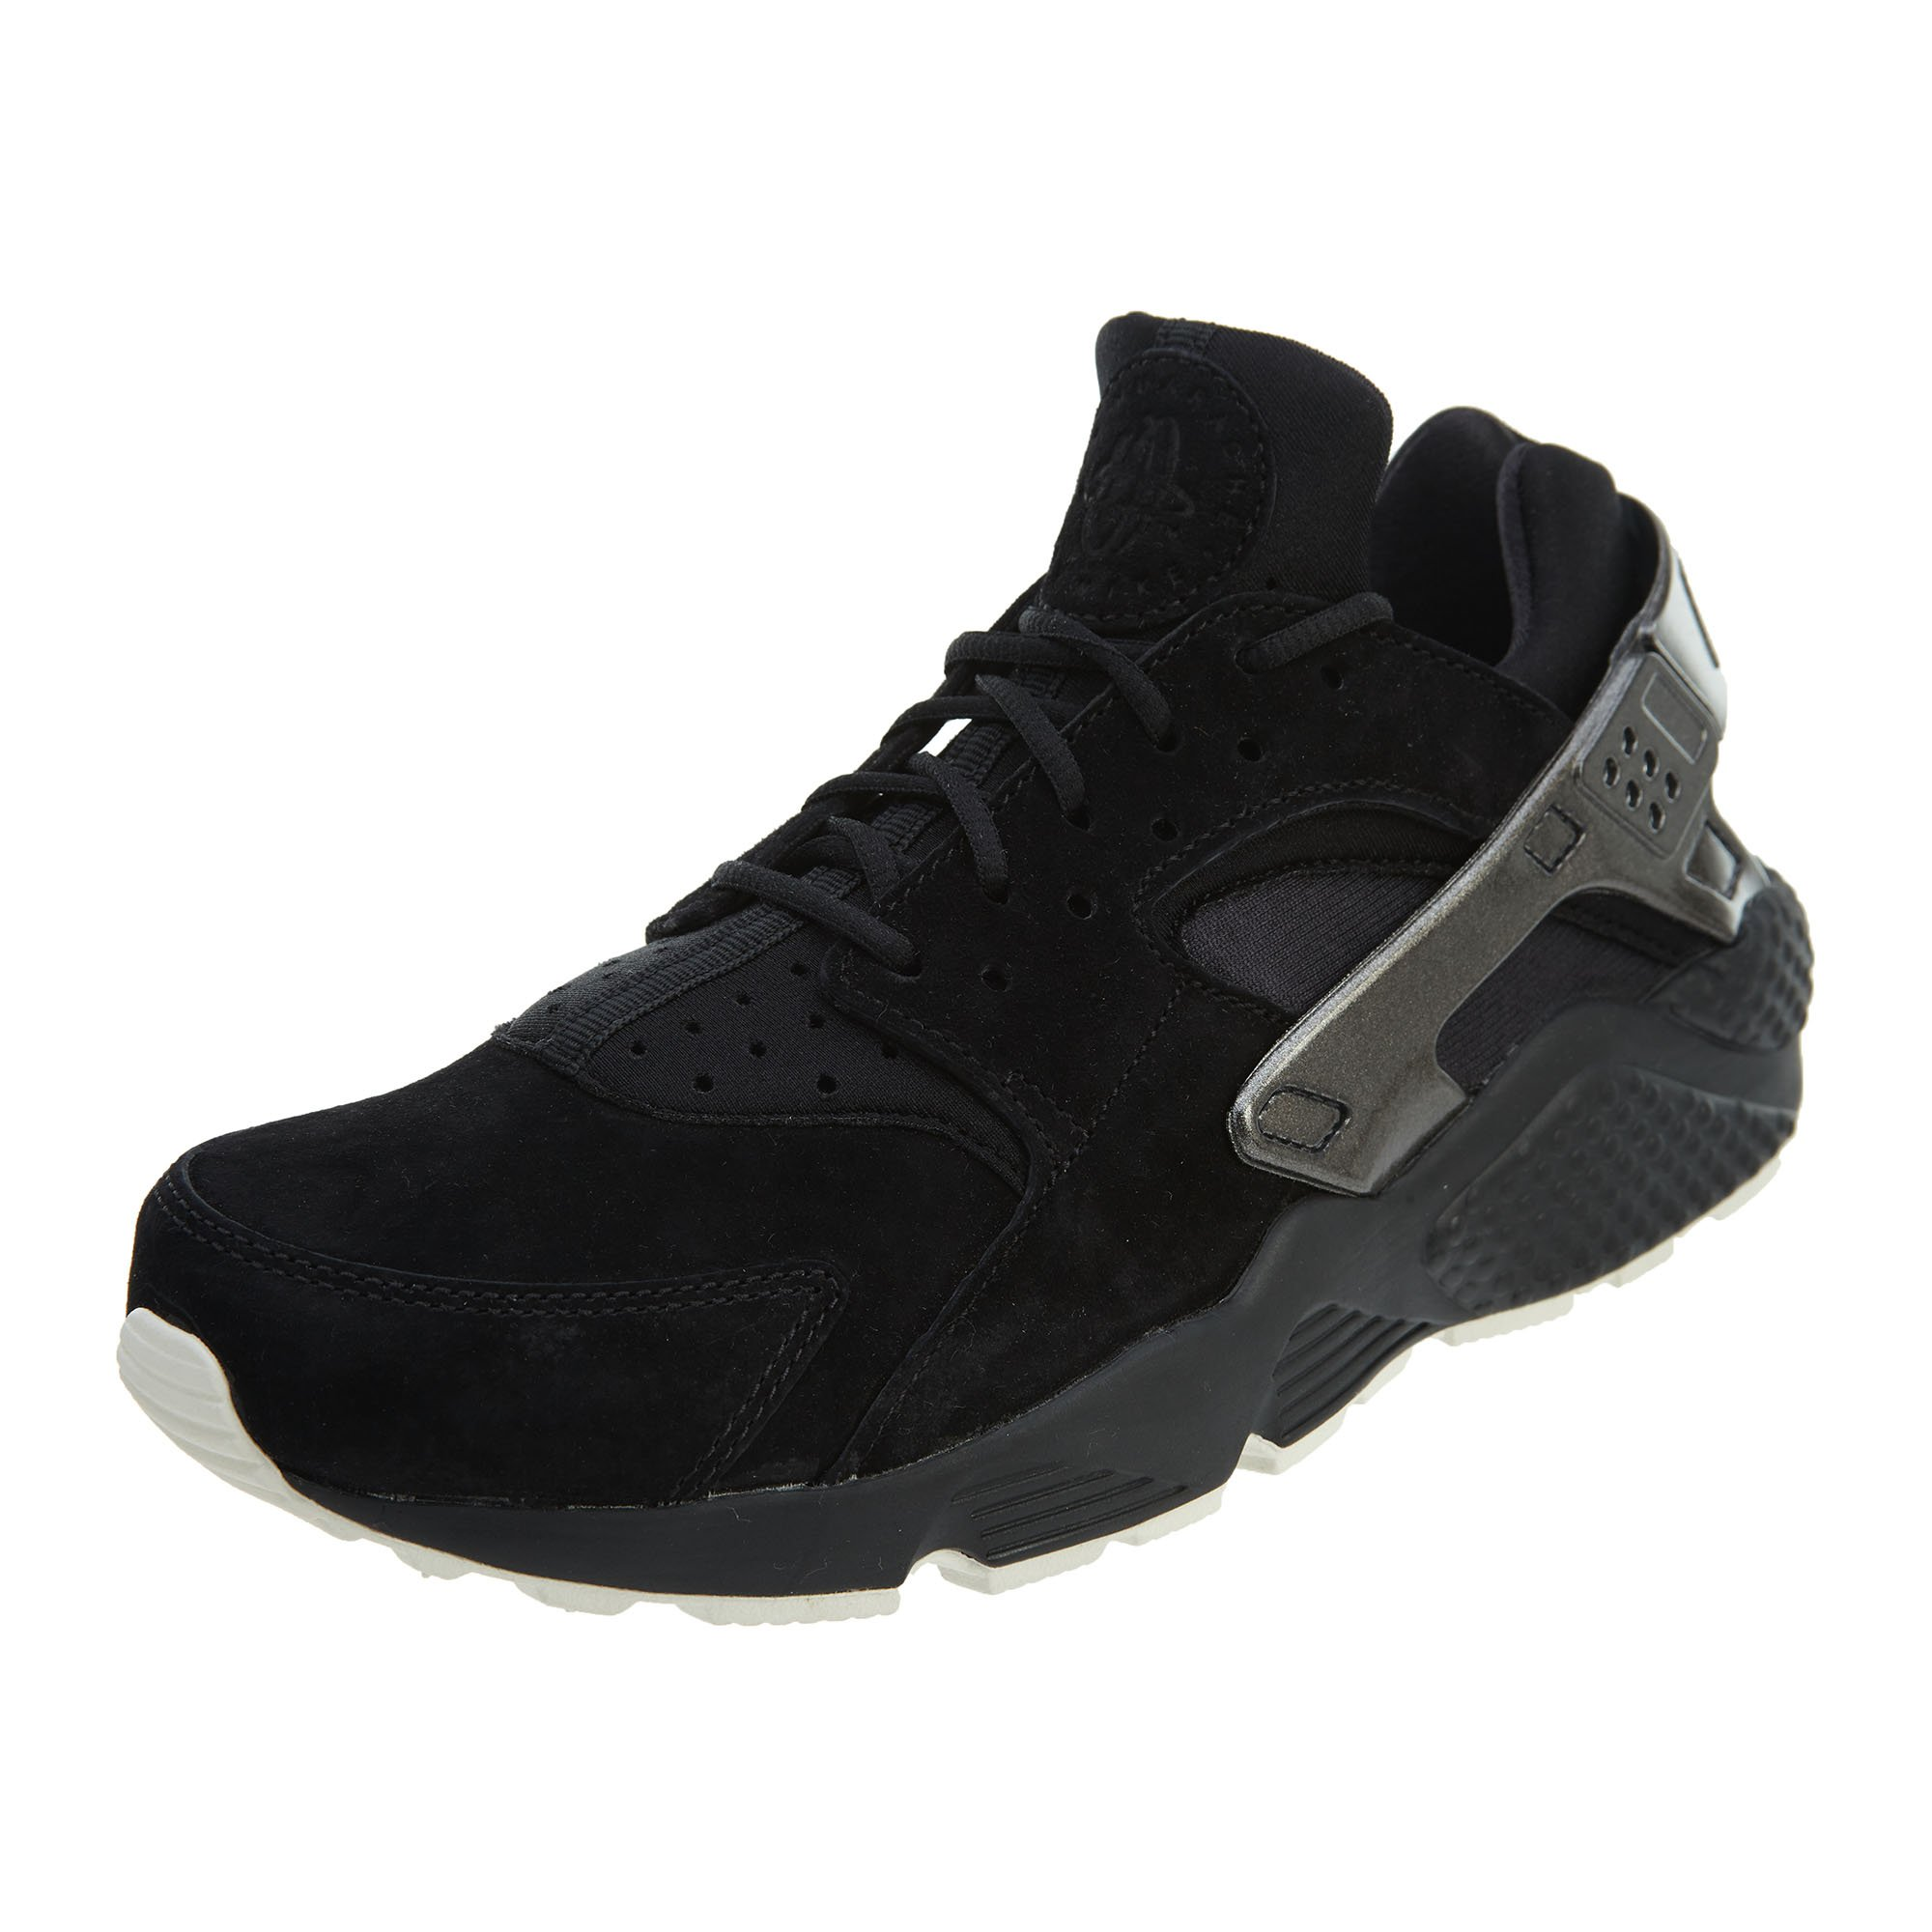 low cost a12b6 98fc6 Galleon - NIKE 704830-014  Men s Air Huarache Run Black Sail Sneaker (9 D(M)  US)